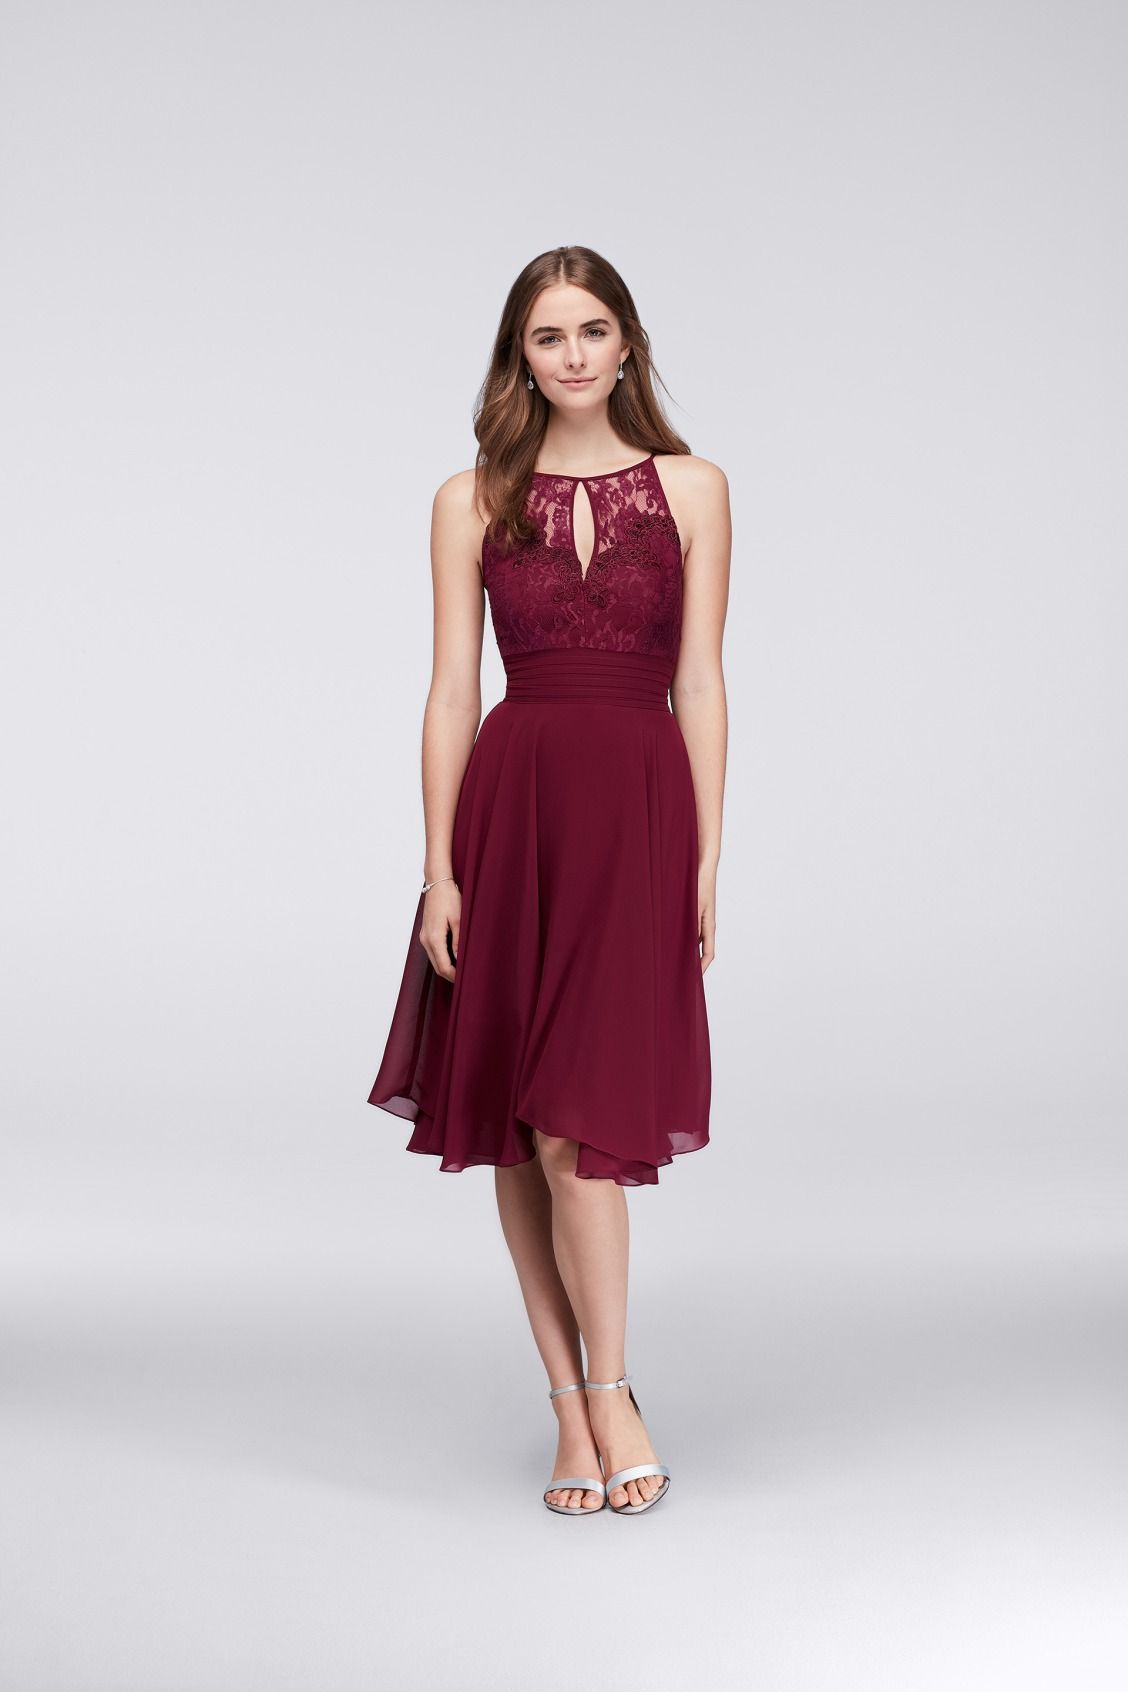 a559013836 For your burgundy bridesmaids